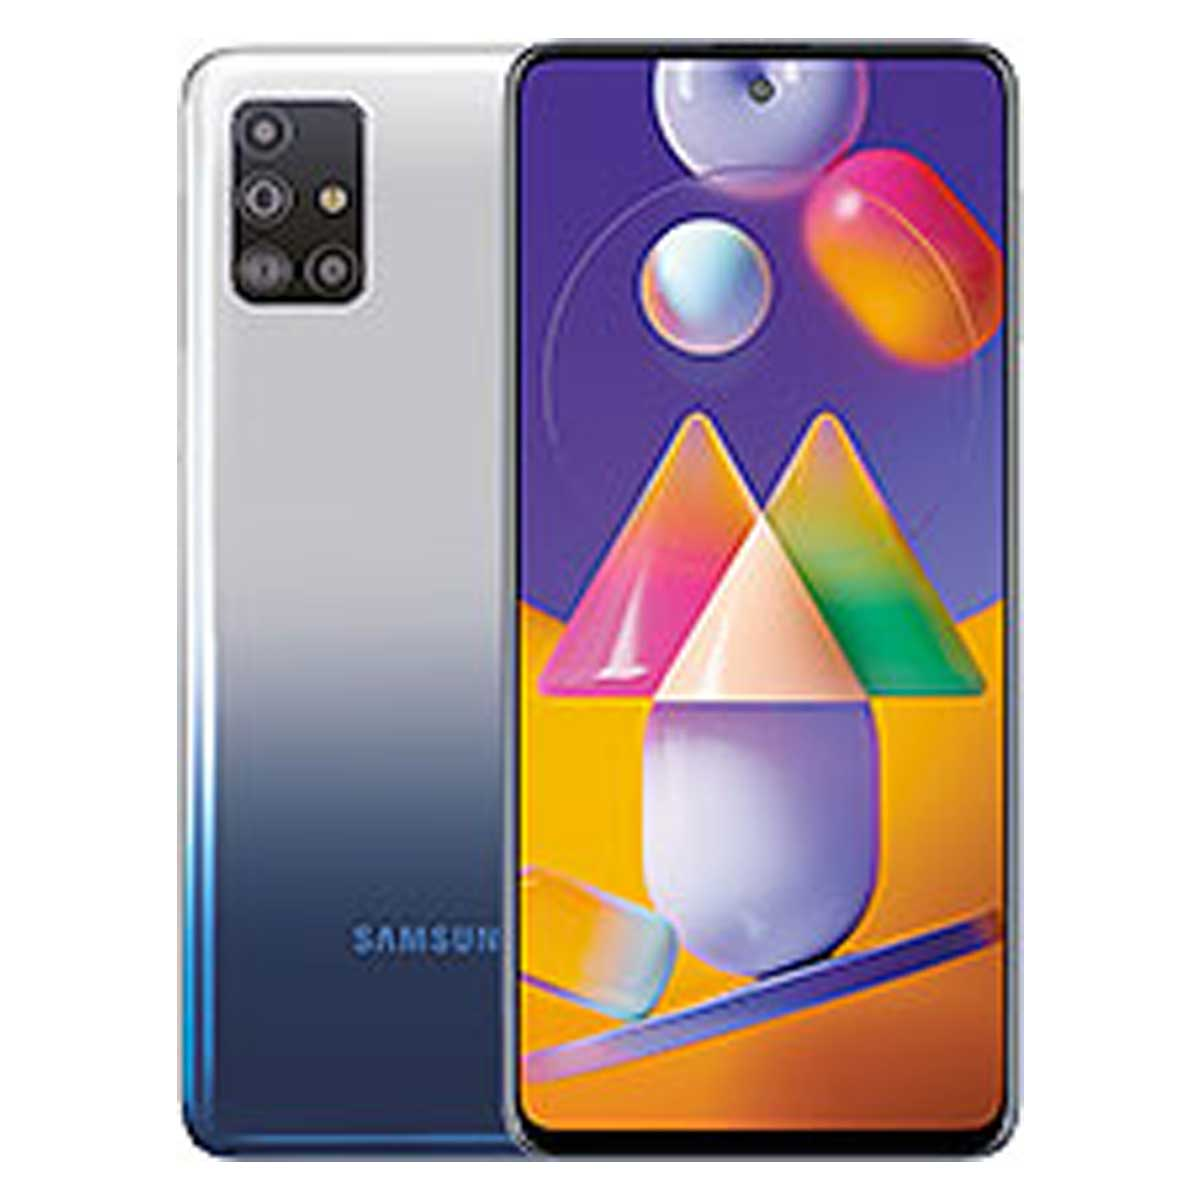 Samsung Galaxy M31s Price in India, Full Specs - 30th January 2021 | Digit